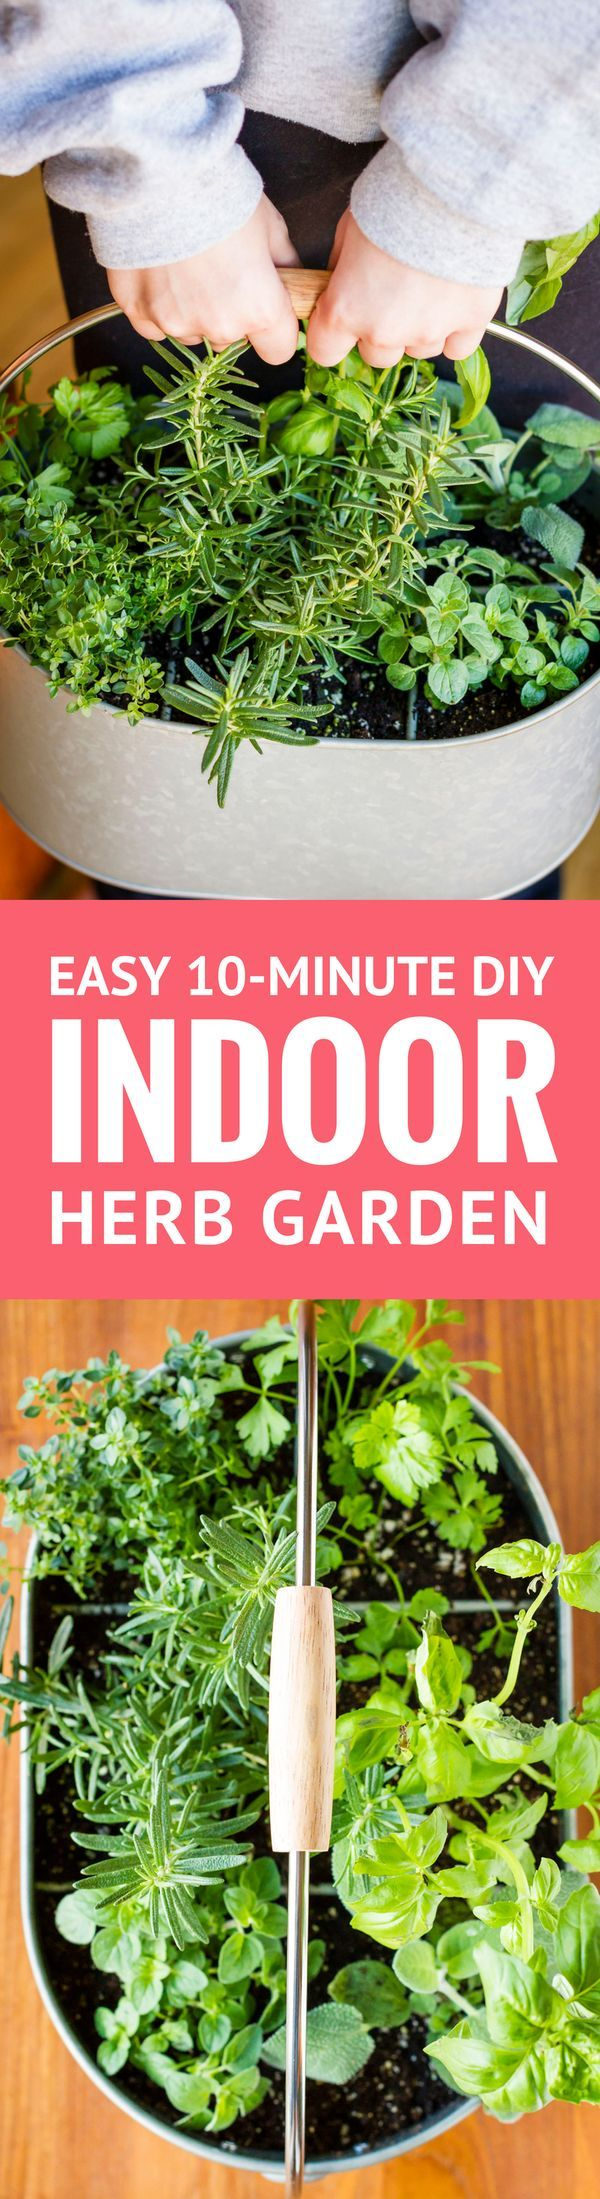 best 25 herb garden indoor ideas on pinterest indoor herbs diy